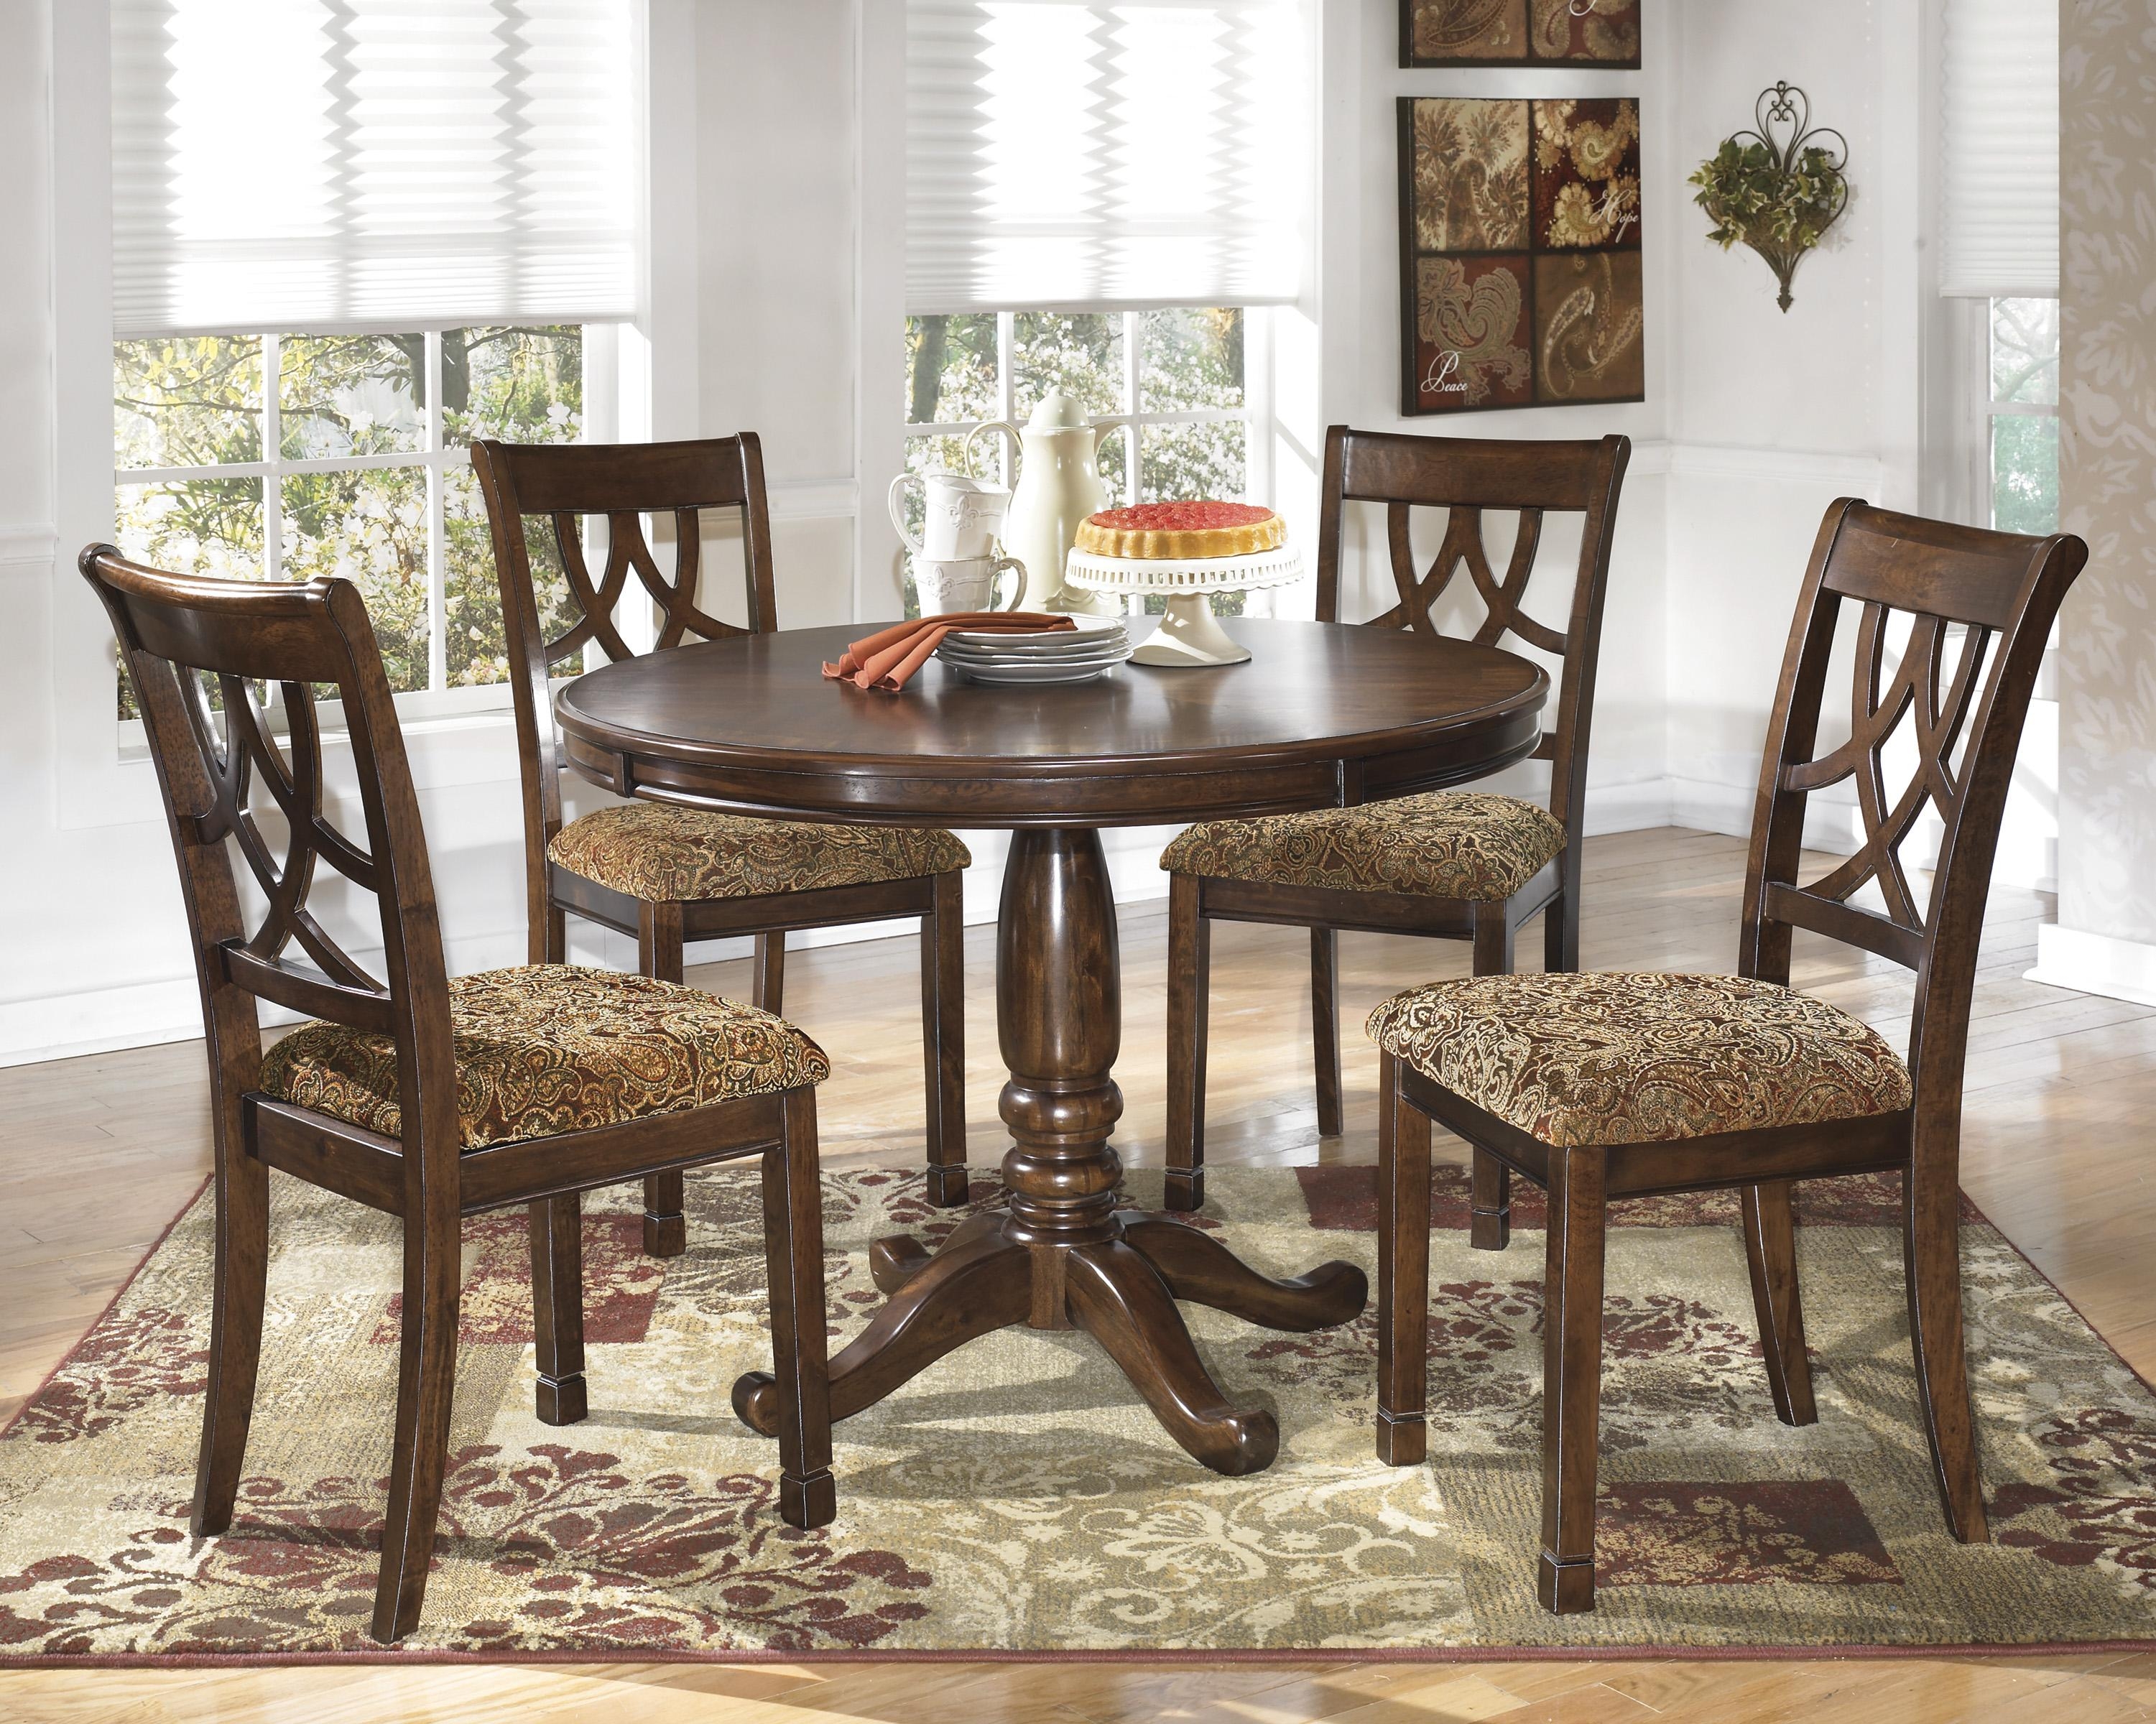 Round Dining Table With Turned Pedestal Base Amp Bordered